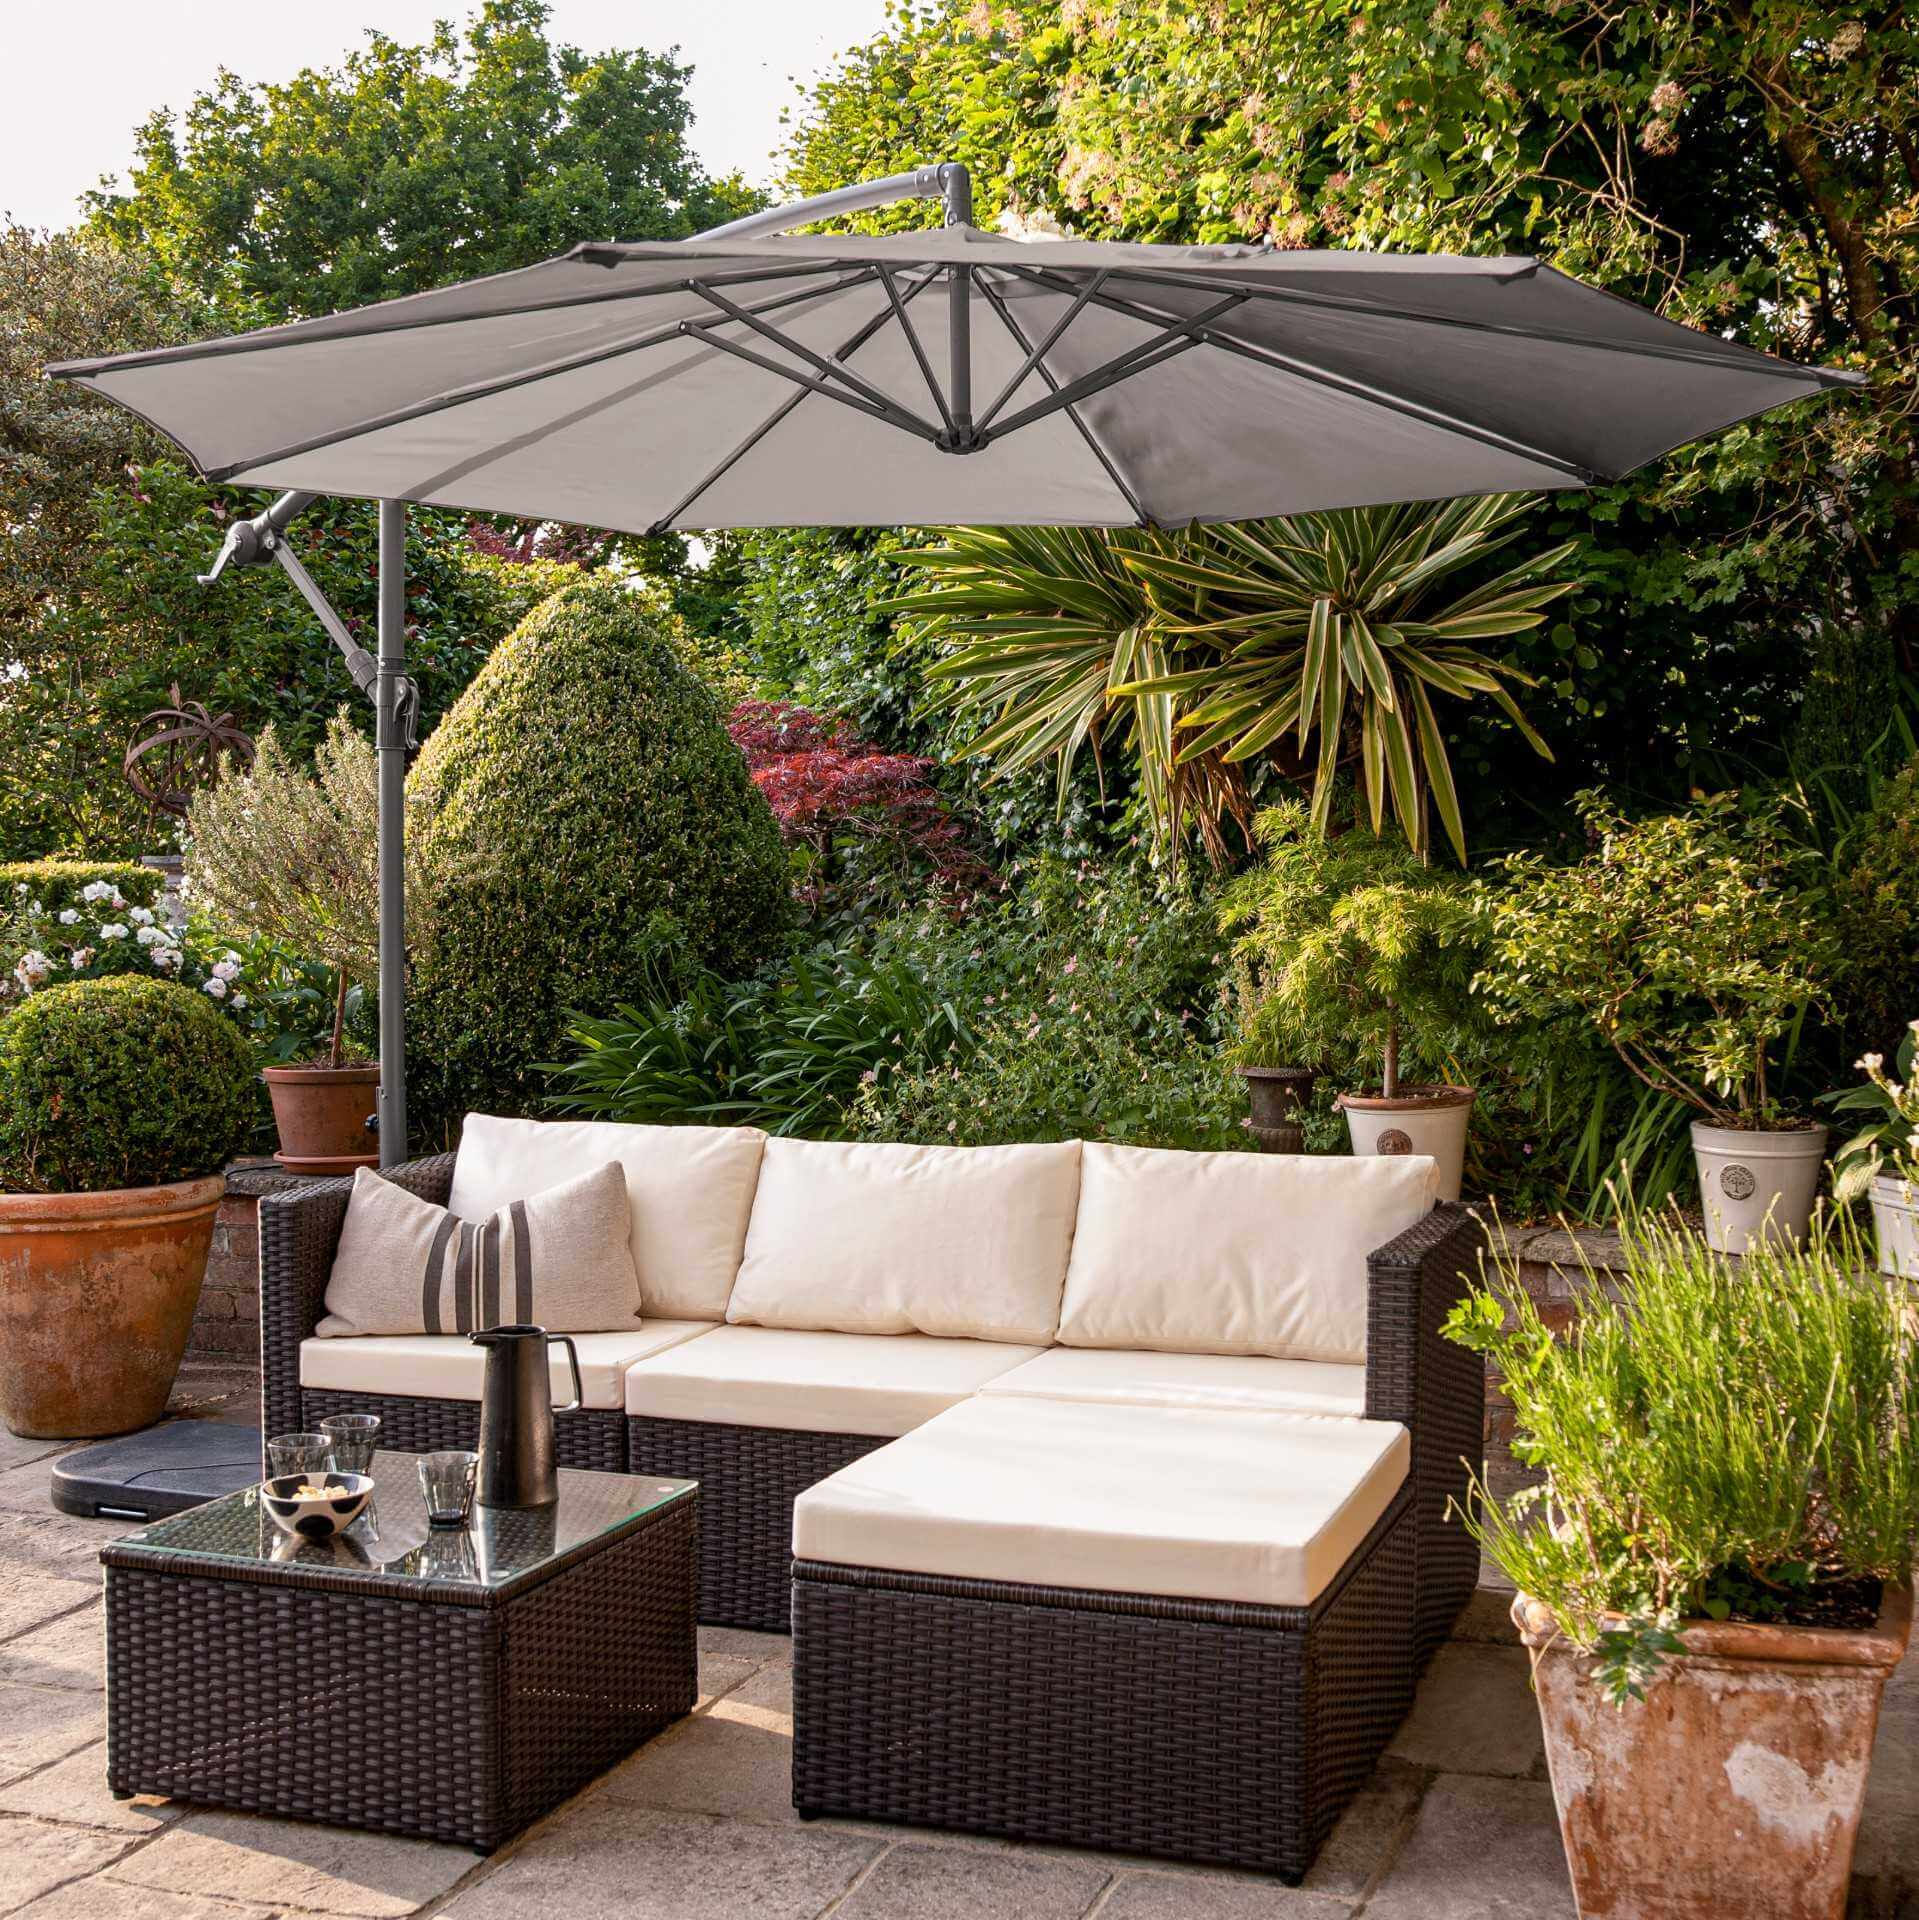 4 Seater Rattan Corner Sofa Set with Lean Over Parasol and Base - Brown Weave